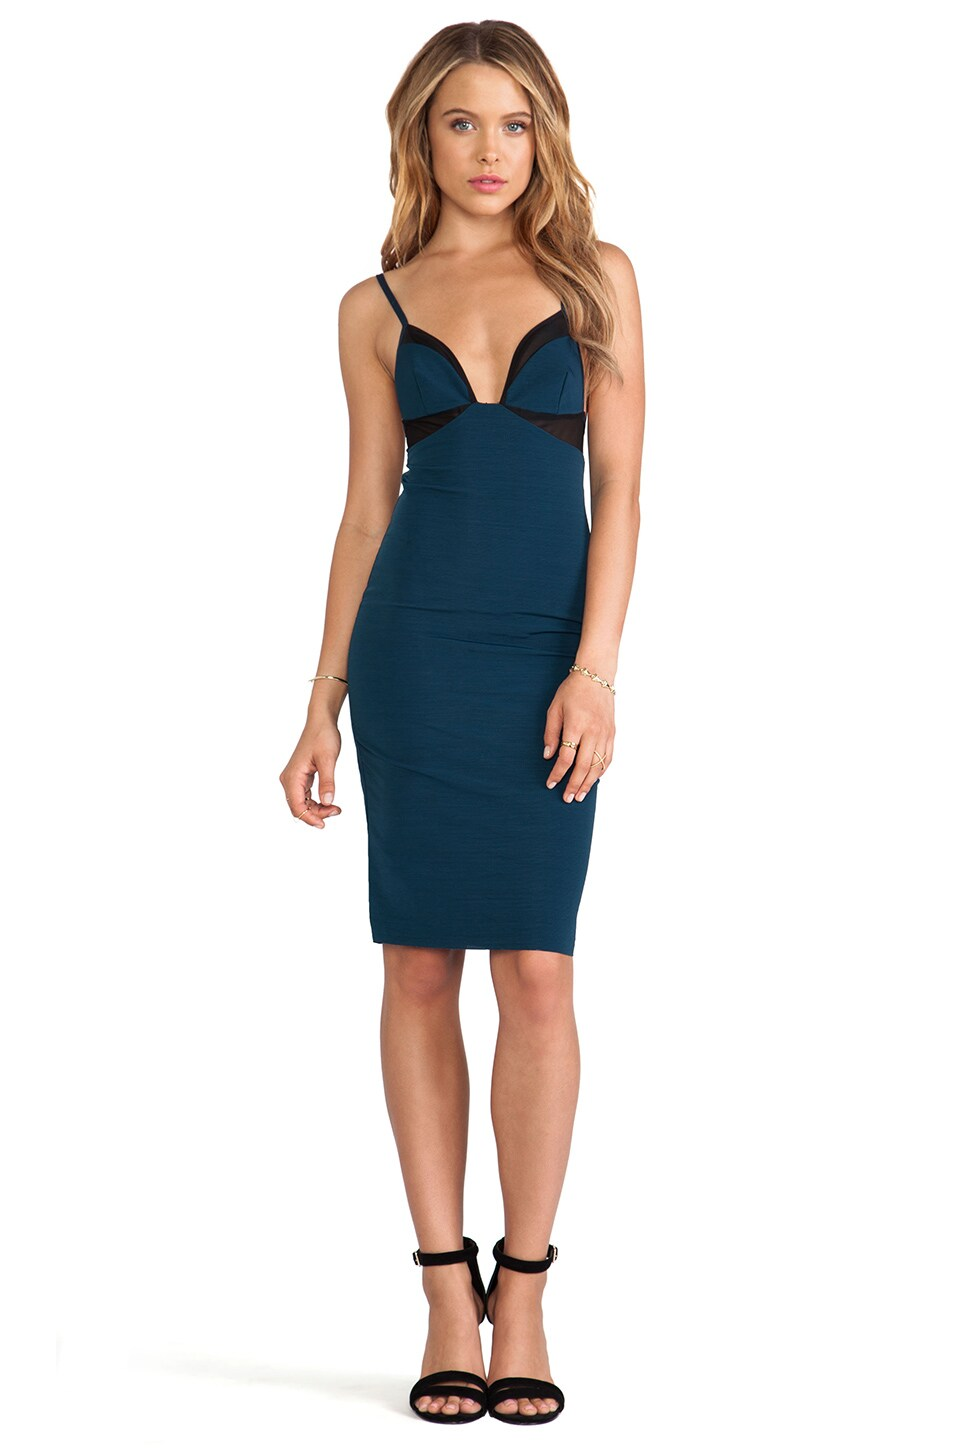 BEC&BRIDGE Mercury Body Dress in Petrol